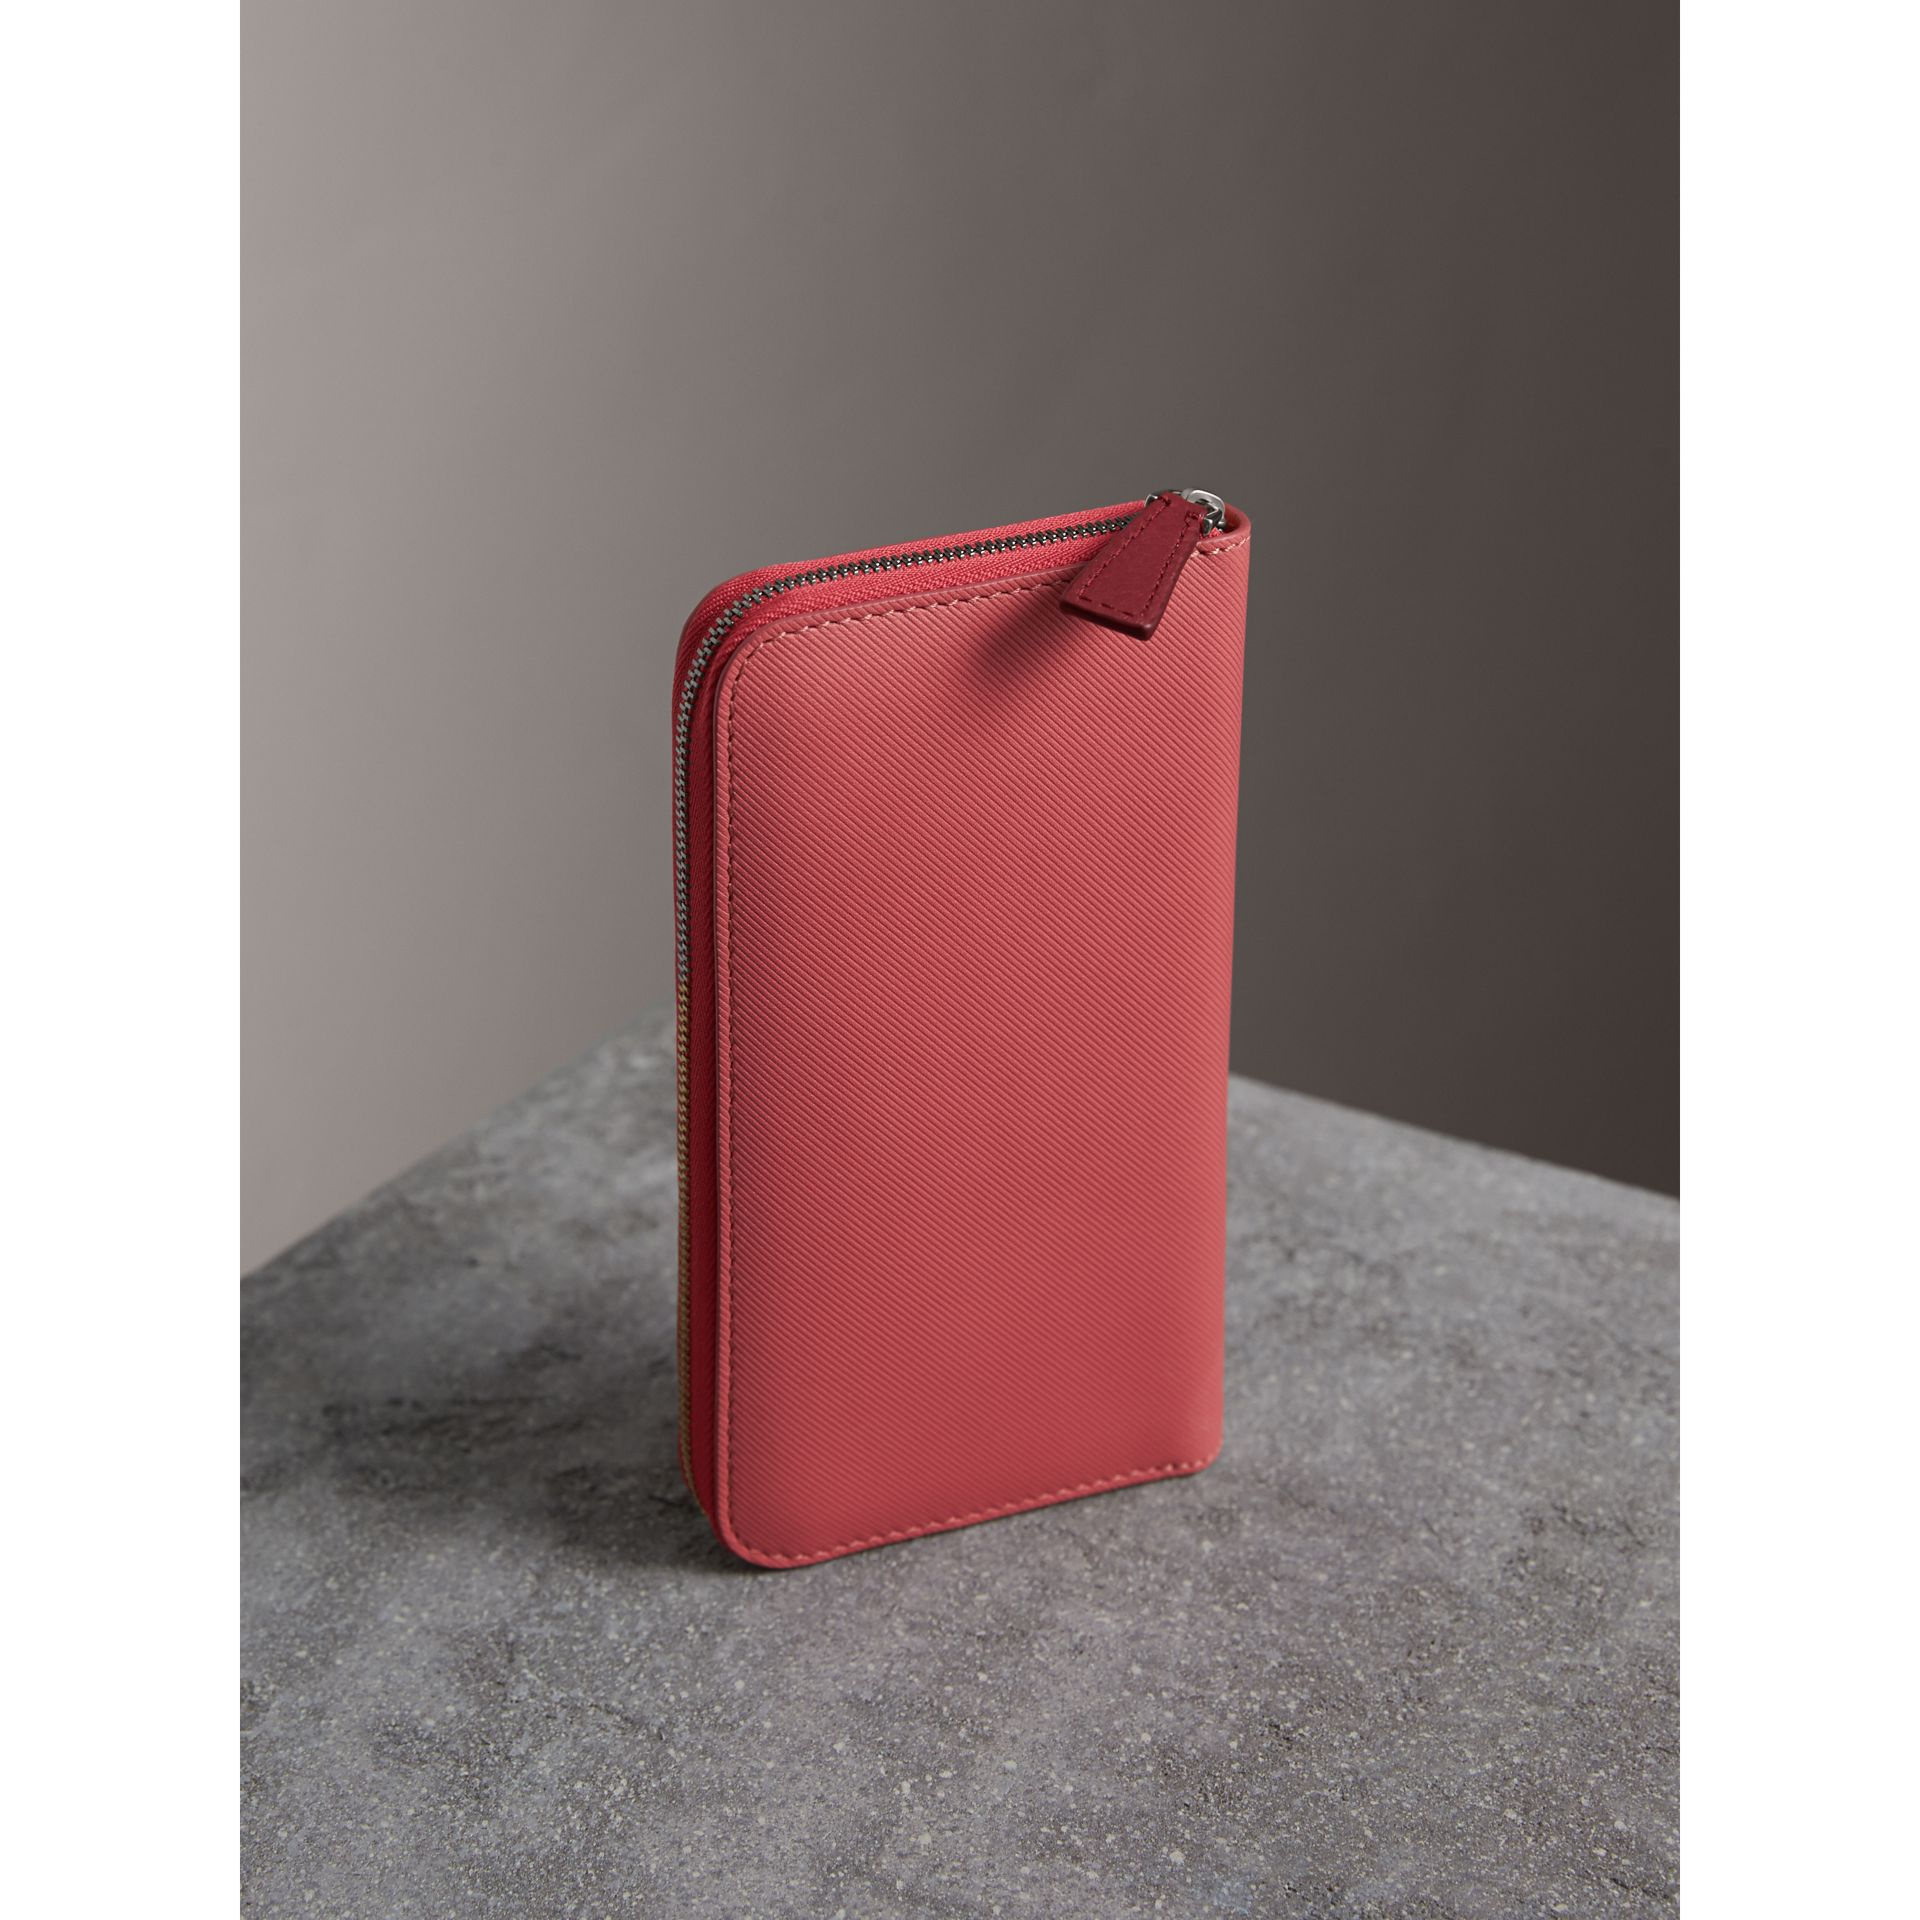 Two-tone Trench Leather Ziparound Wallet in Blossom Pink - Women | Burberry United Kingdom - gallery image 2